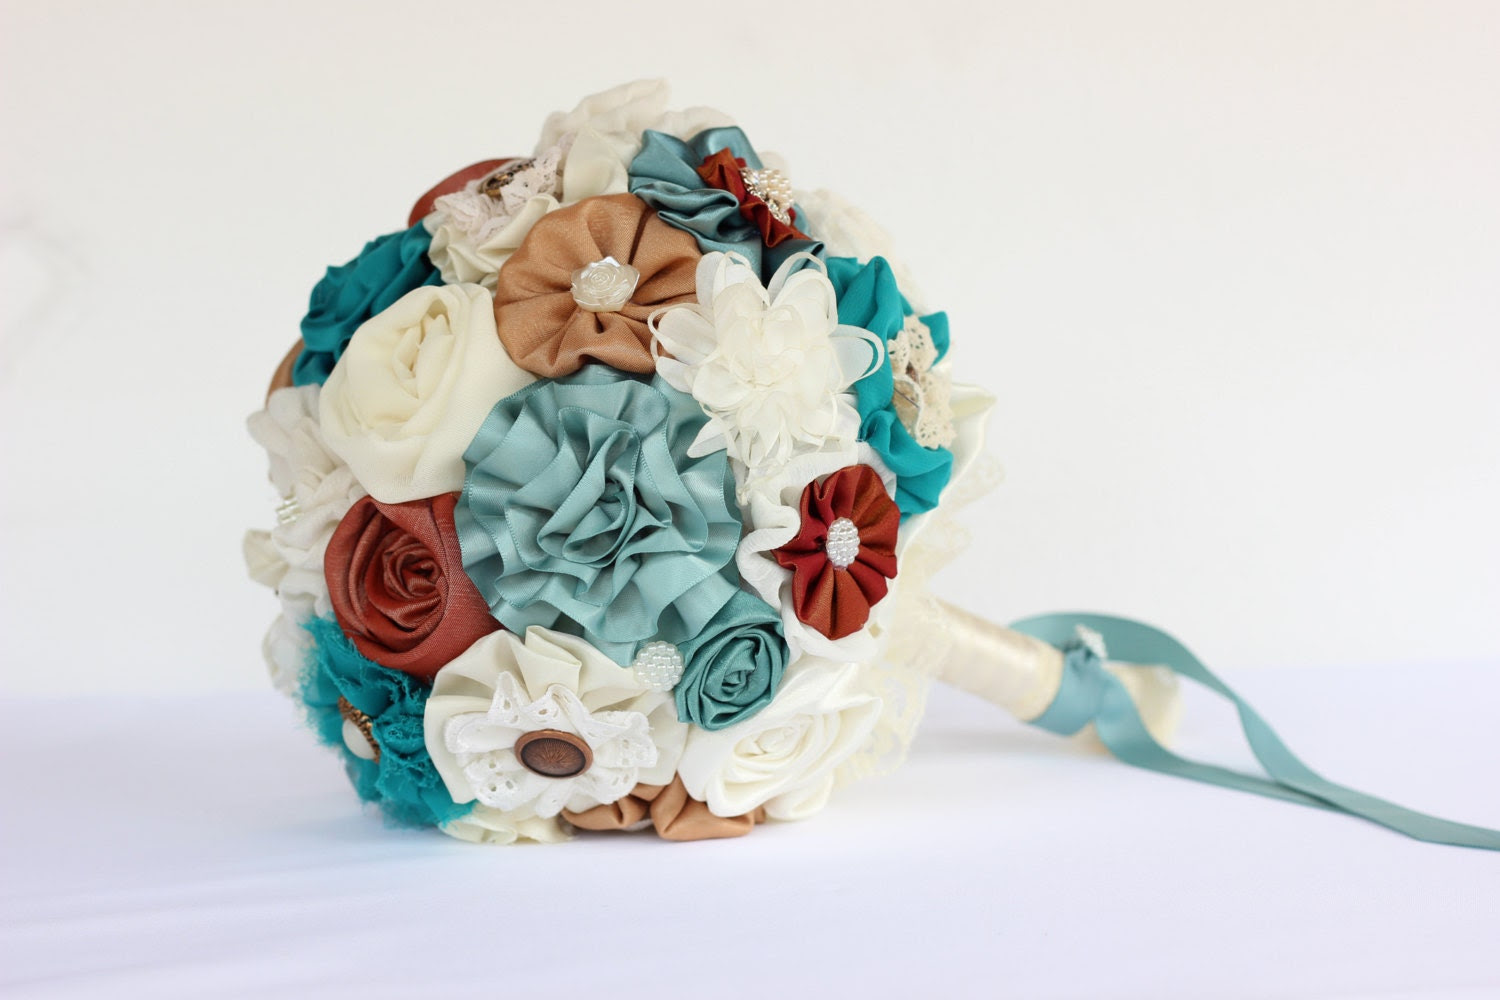 Resereved- Fabric Bridal Bouquet, Wedding Fabric Bouquet DEPOSIT, teal copper bouquet